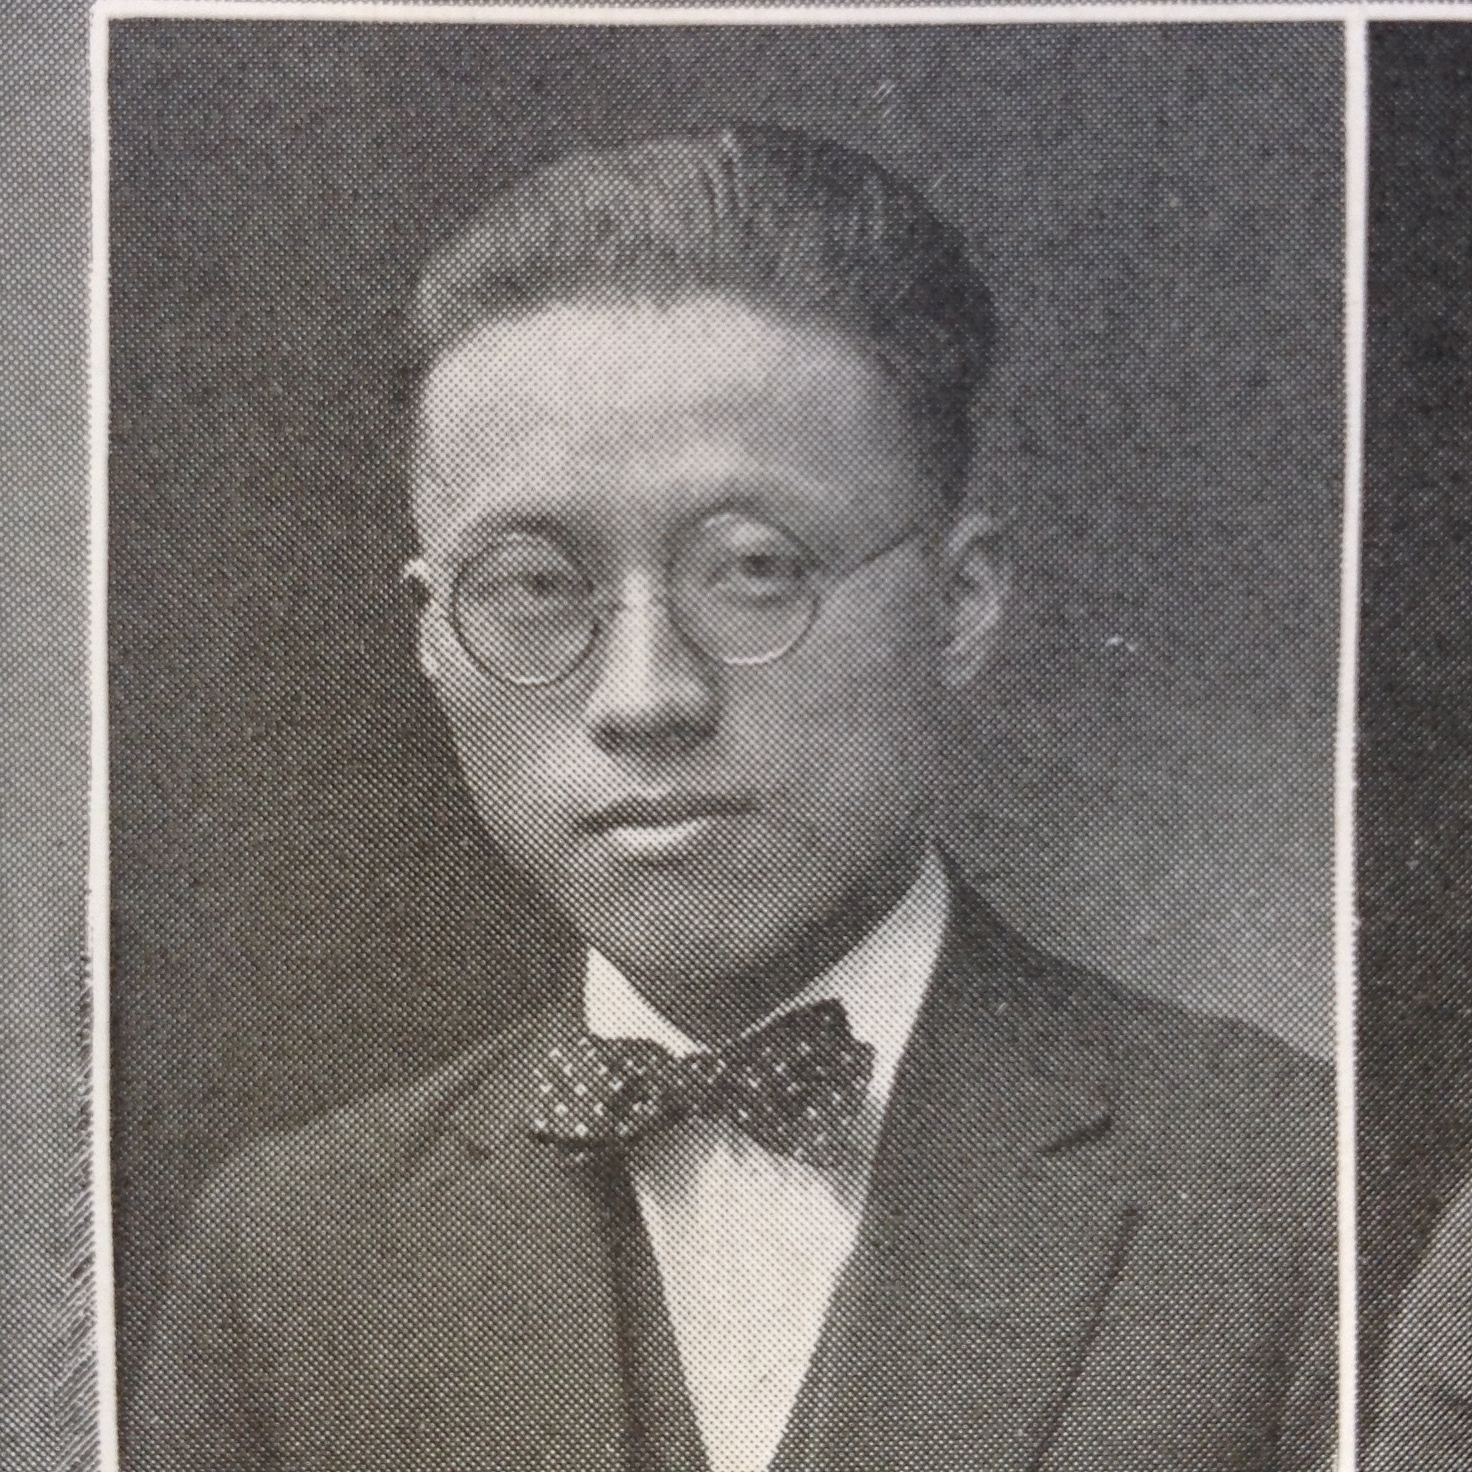 YH Ku, Technique 1925, 85. Courtesy MIT Archives and Special Collections.